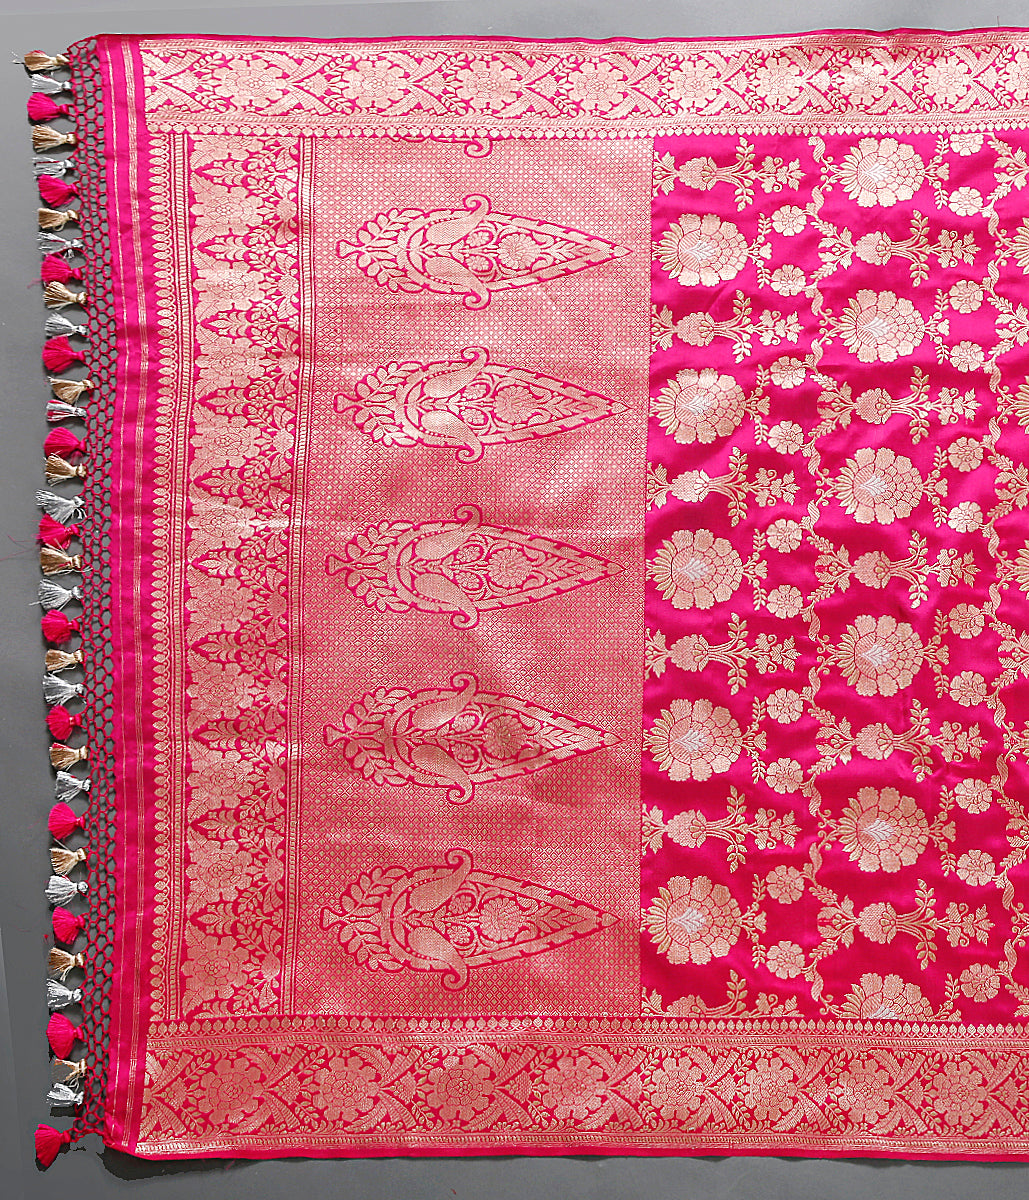 Katan silk jangla Dupatta with jhoomar jaal in a stunning Pink color